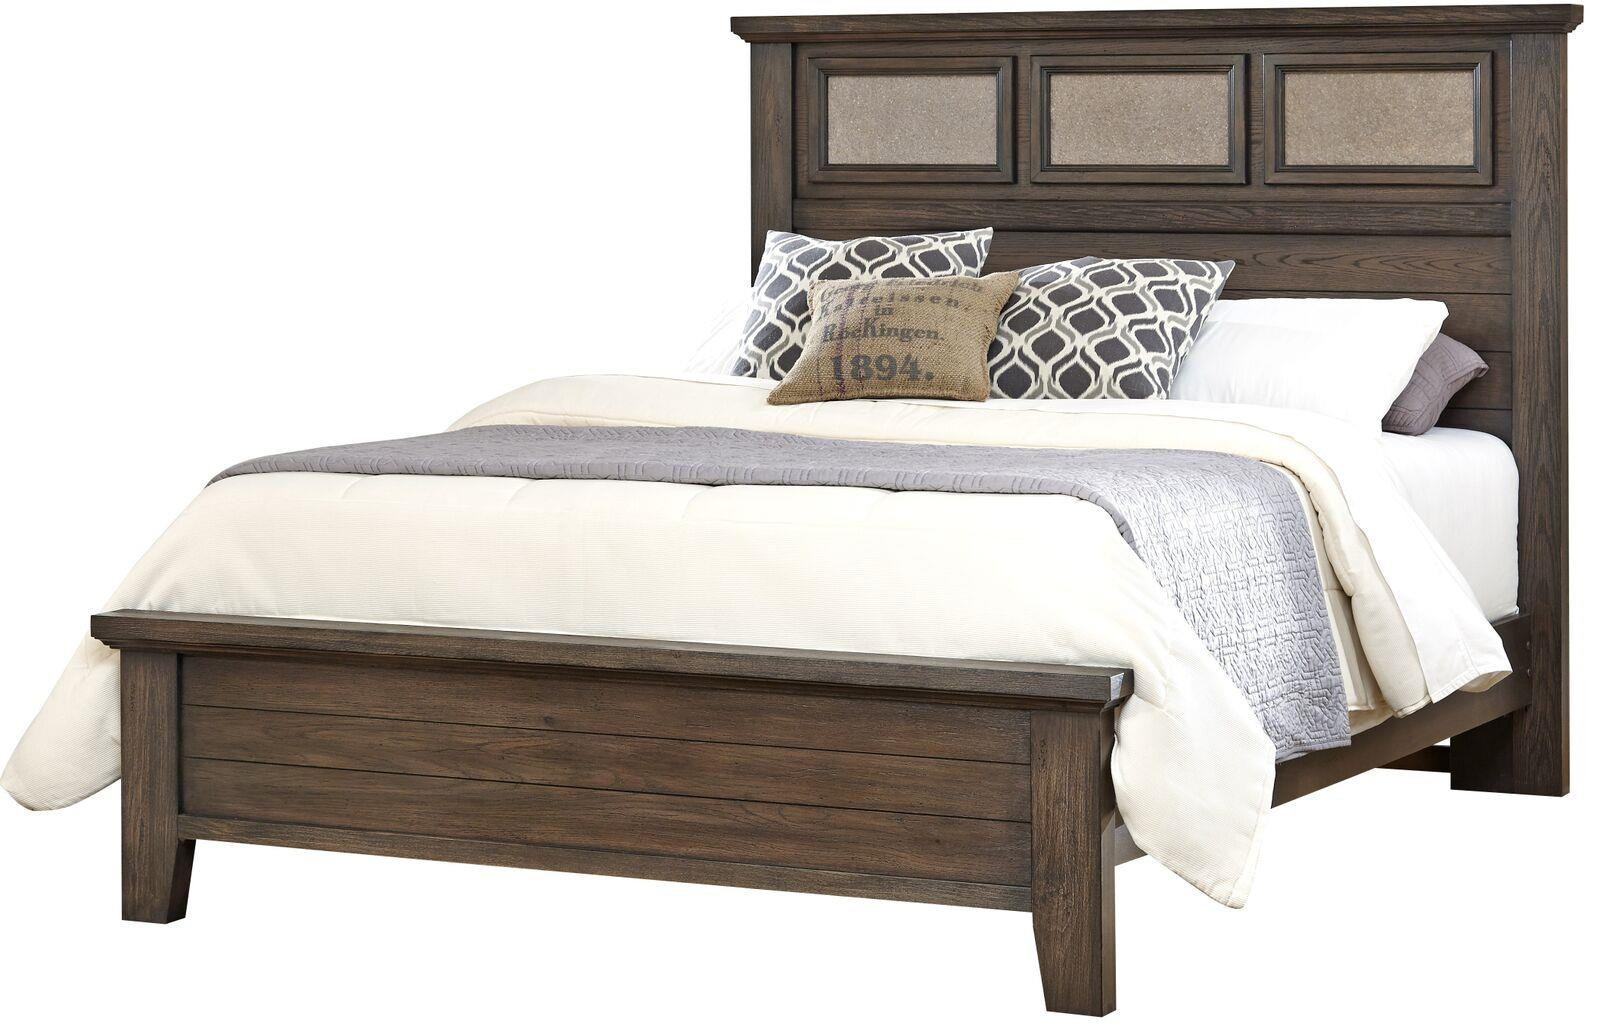 Vaughan Bassett Cassell Park King Tile Bed - Item Number: 518-669+866+922+MS2